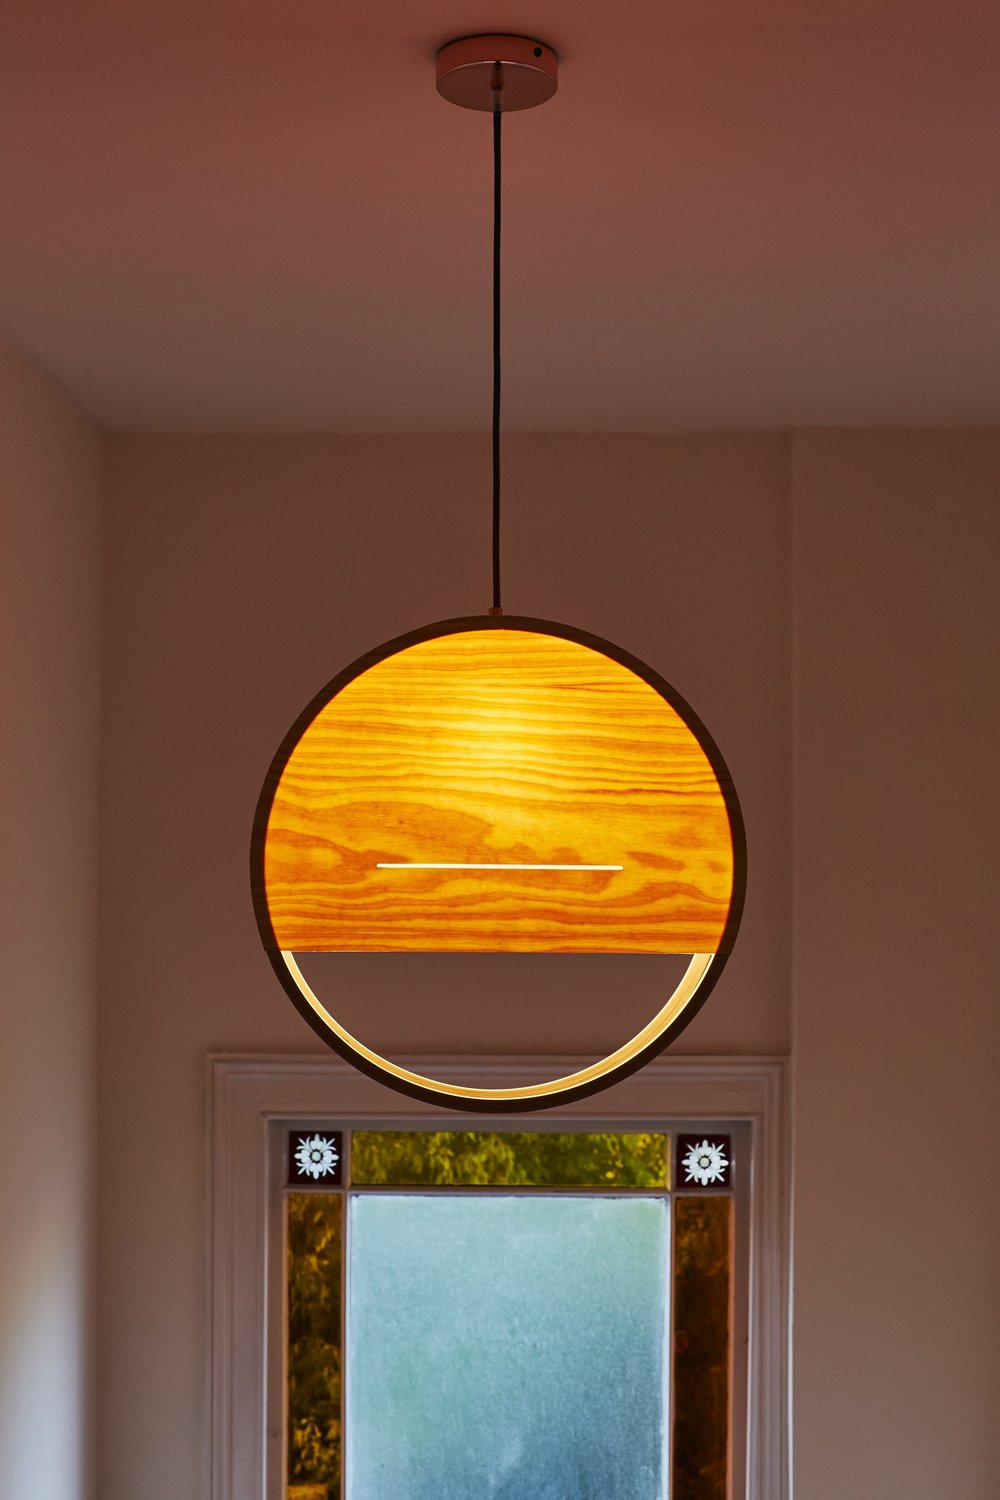 Lozi's Sunset Lamp in a client's home